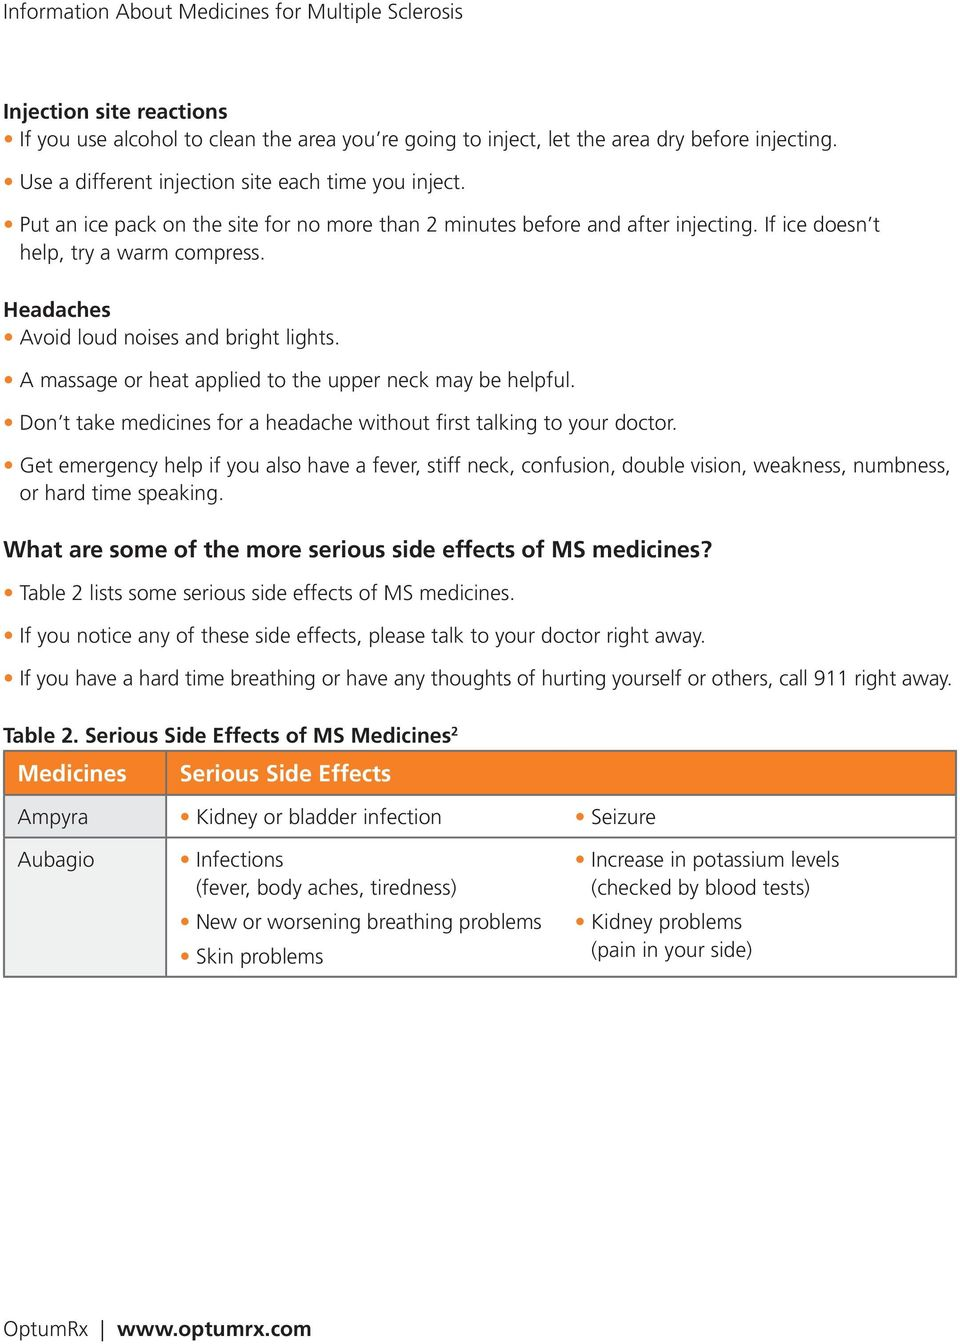 Information About Medicines for Multiple Sclerosis - PDF